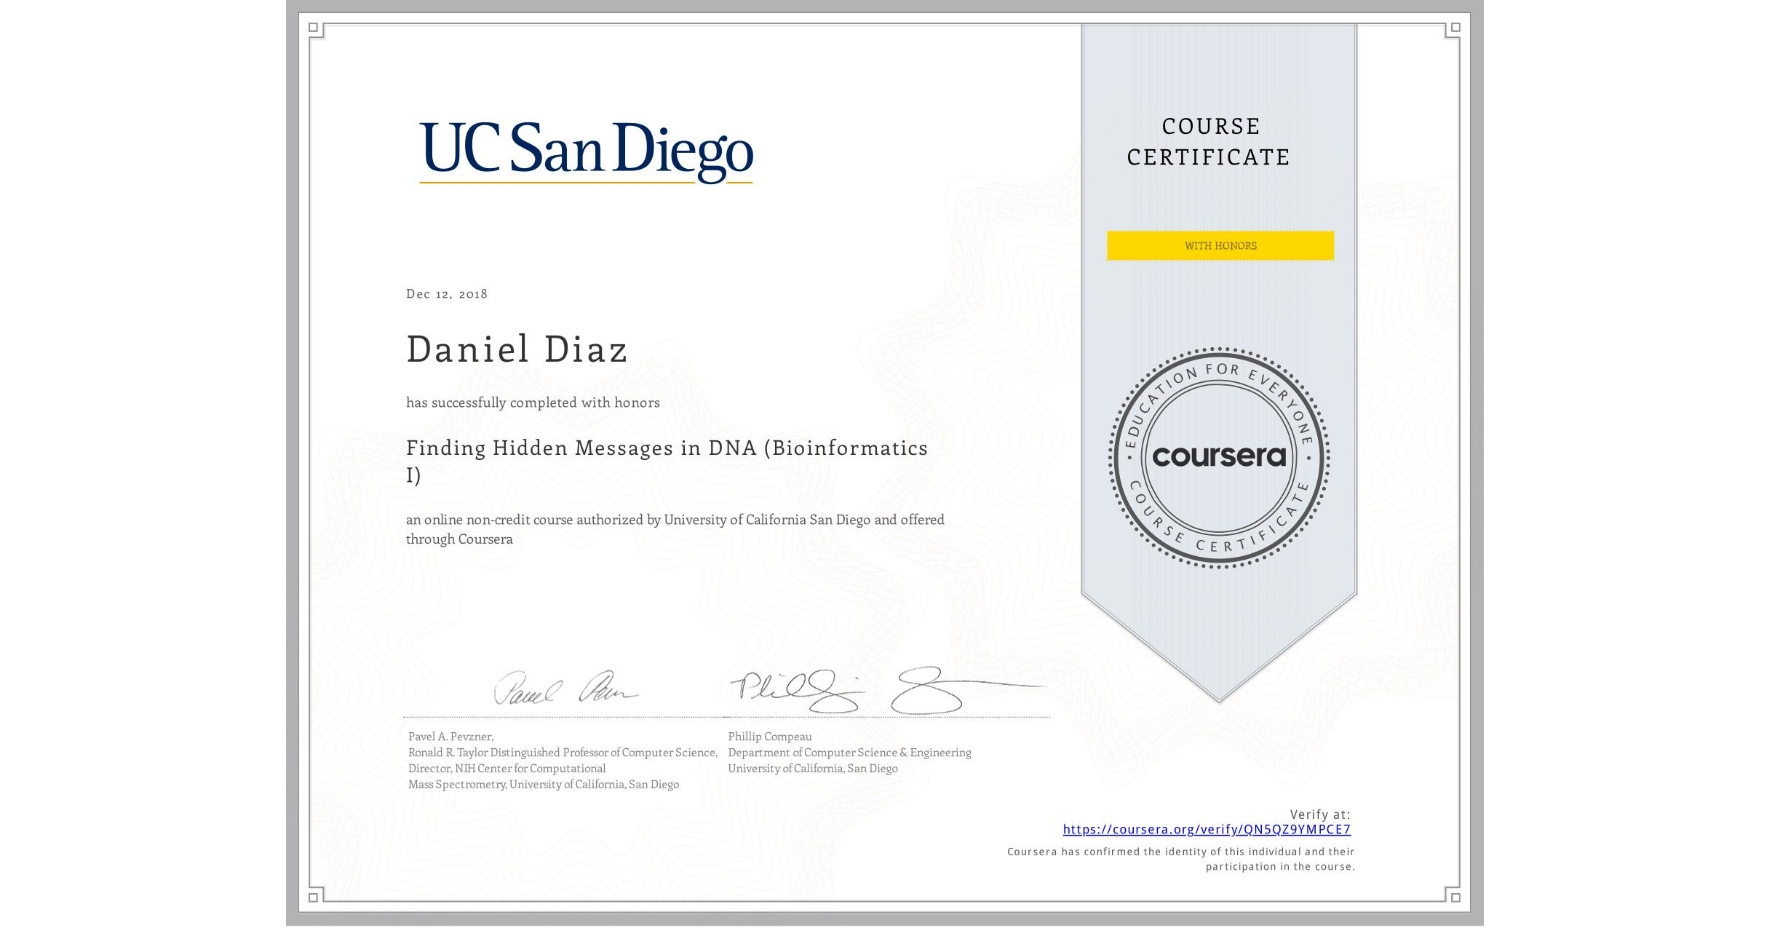 View certificate for Daniel Diaz, Finding Hidden Messages in DNA (Bioinformatics I), an online non-credit course authorized by University of California San Diego and offered through Coursera